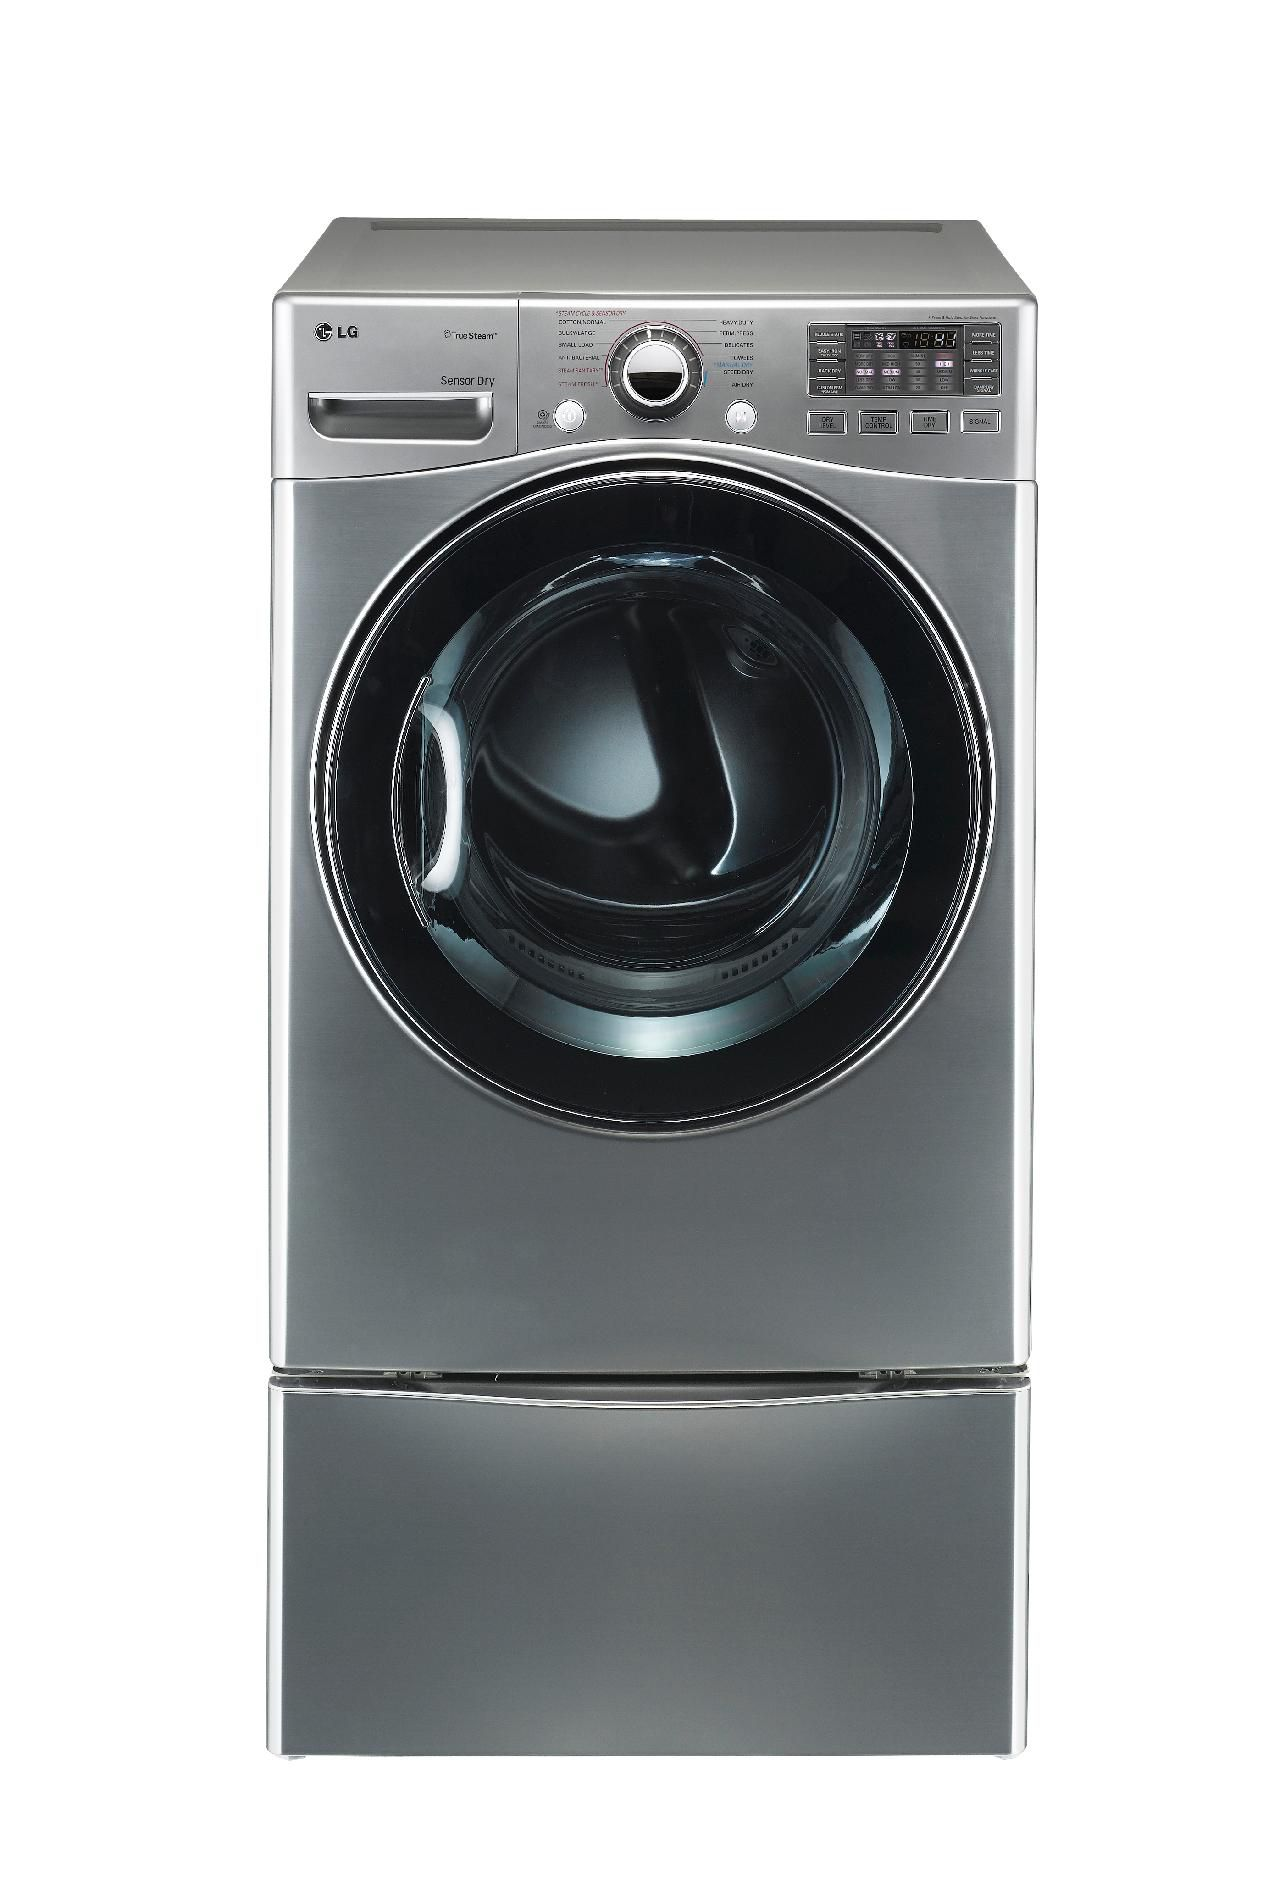 LG 7.3 cu. ft. Steam Gas Dryer w/ Sensor Dry  - Graphite Steel